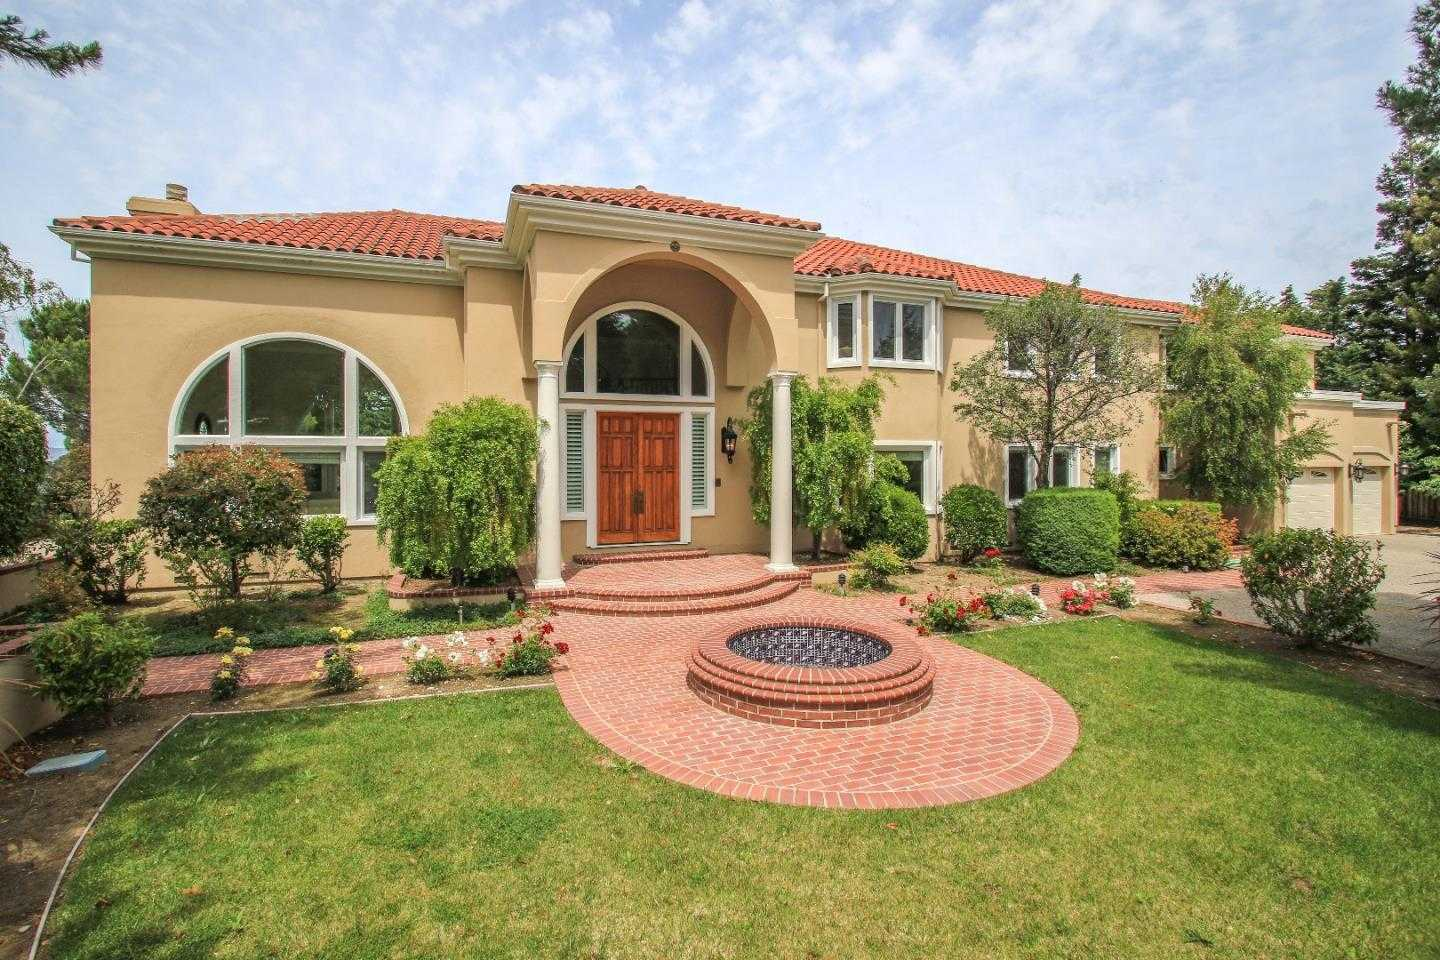 $7,380,000 - 5Br/5Ba -  for Sale in Hillsborough